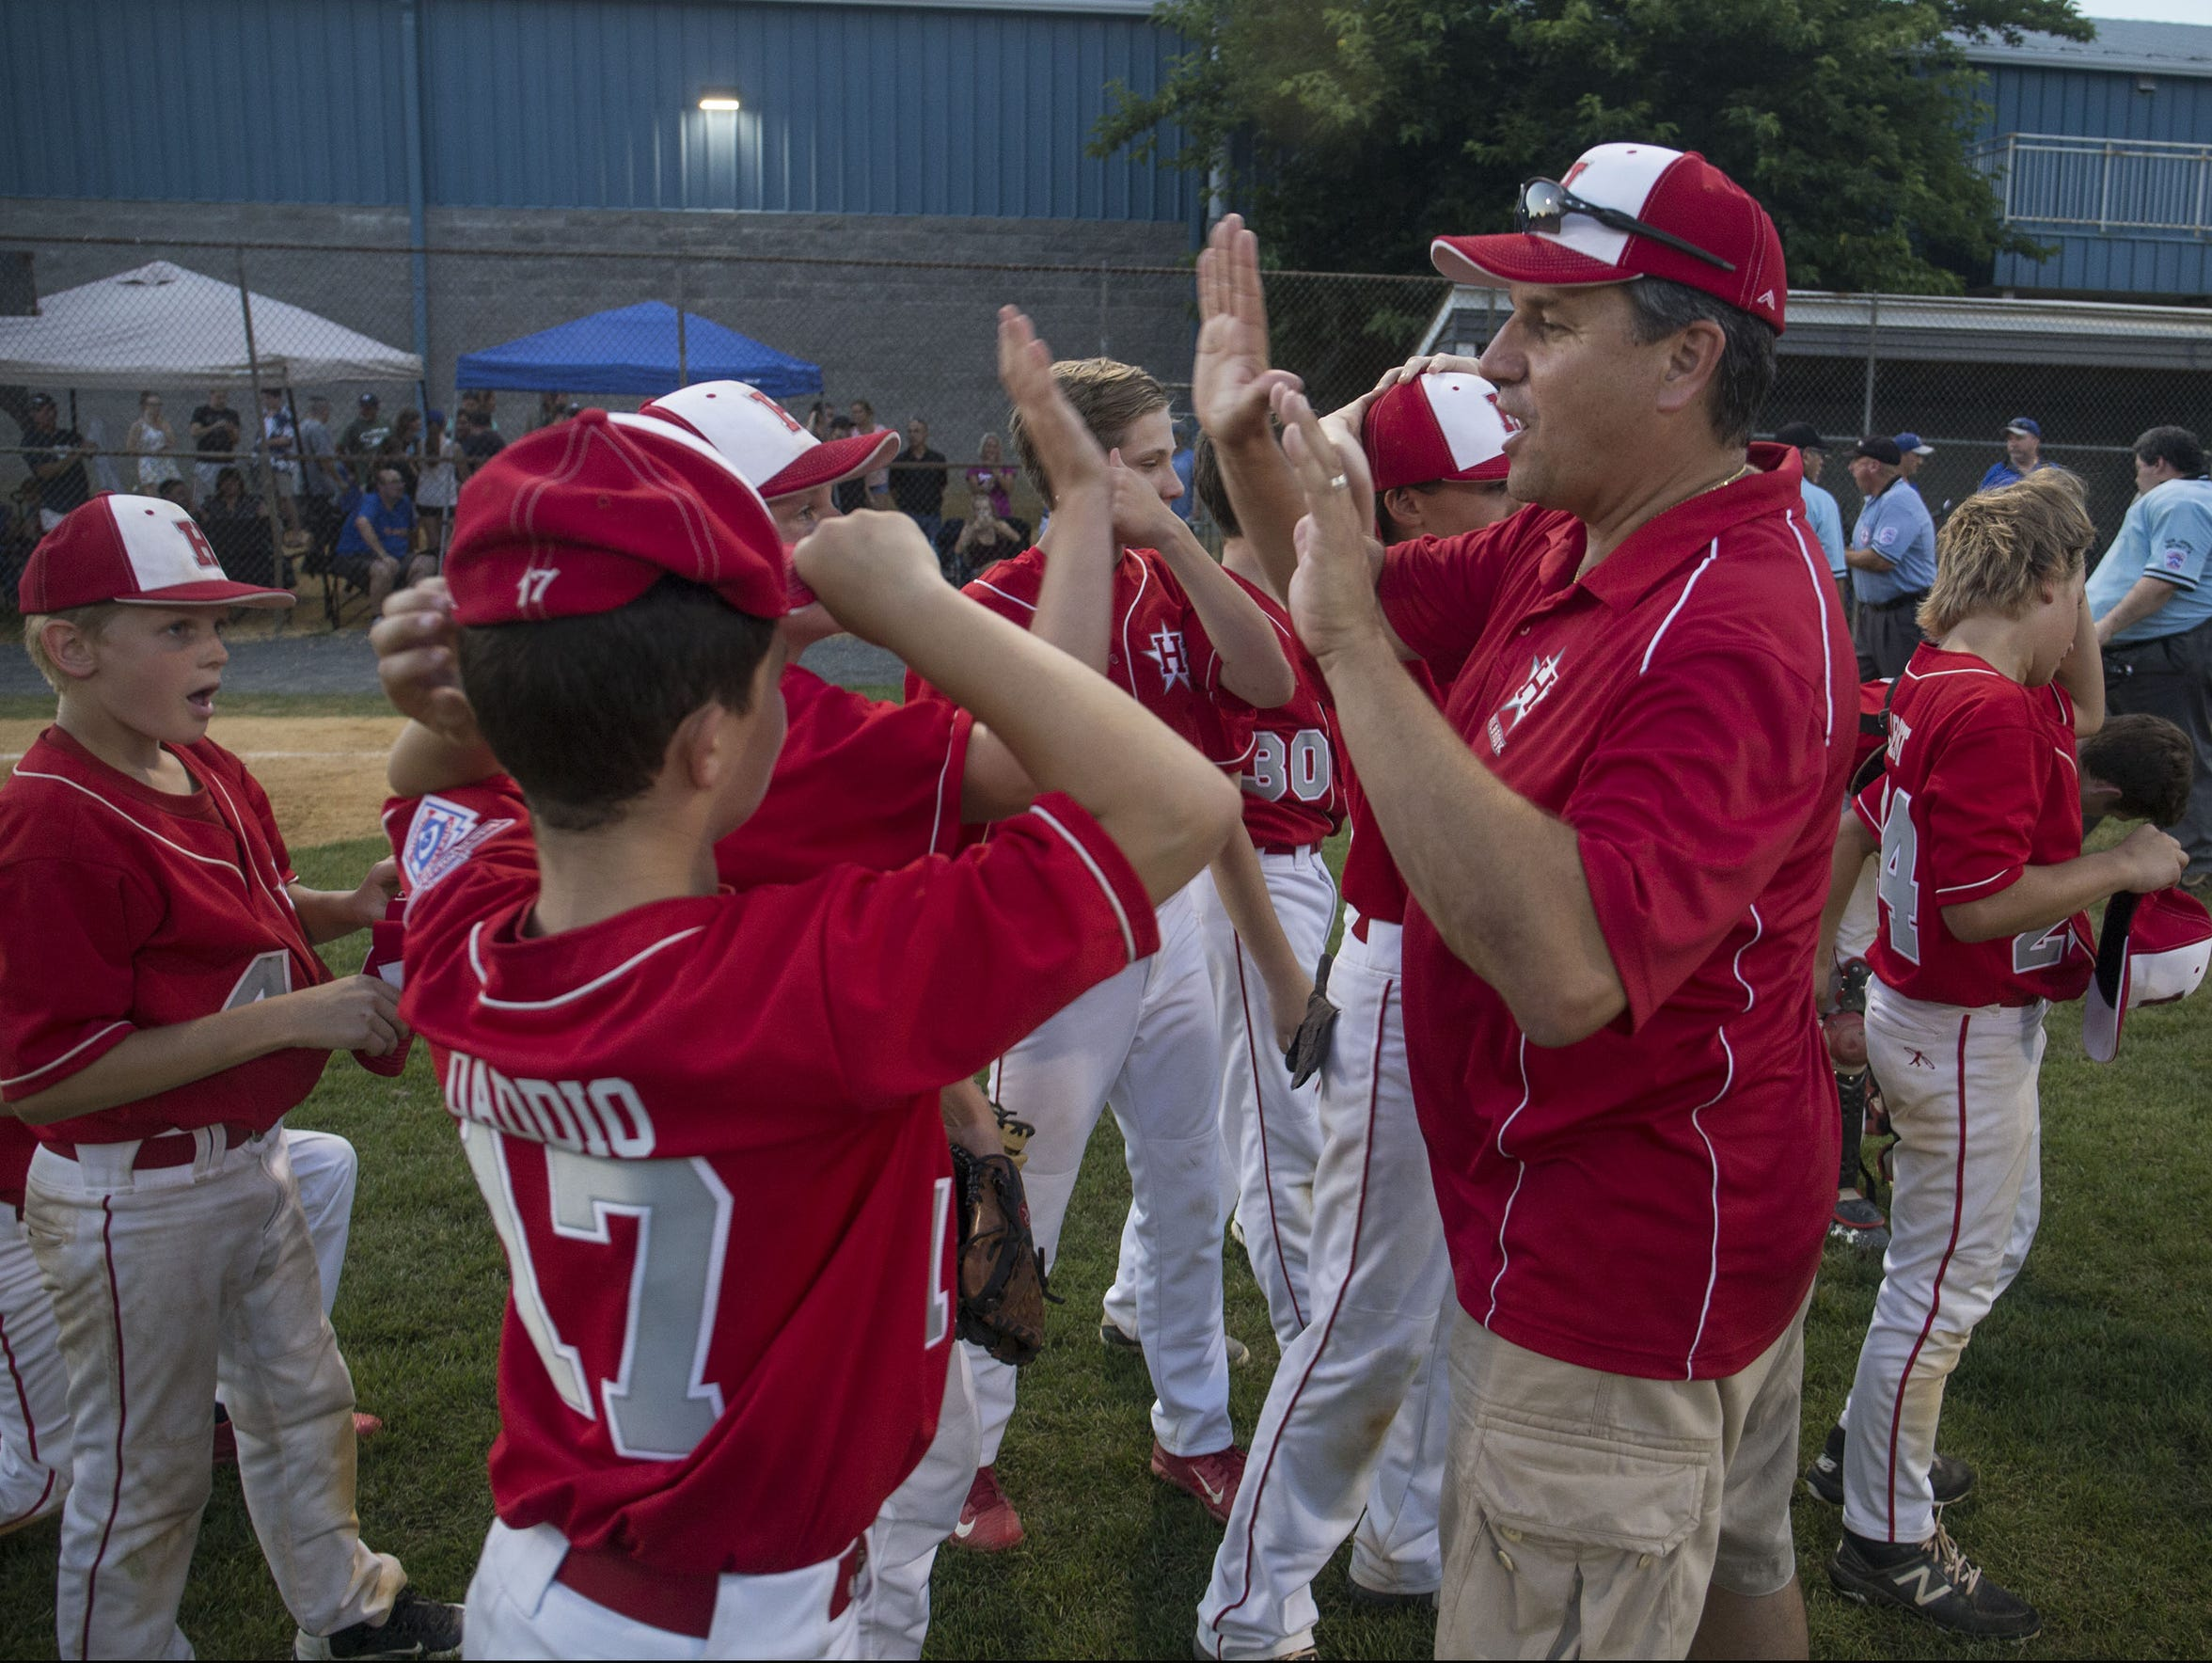 The Holbrook Little League All-Stars celebrate their